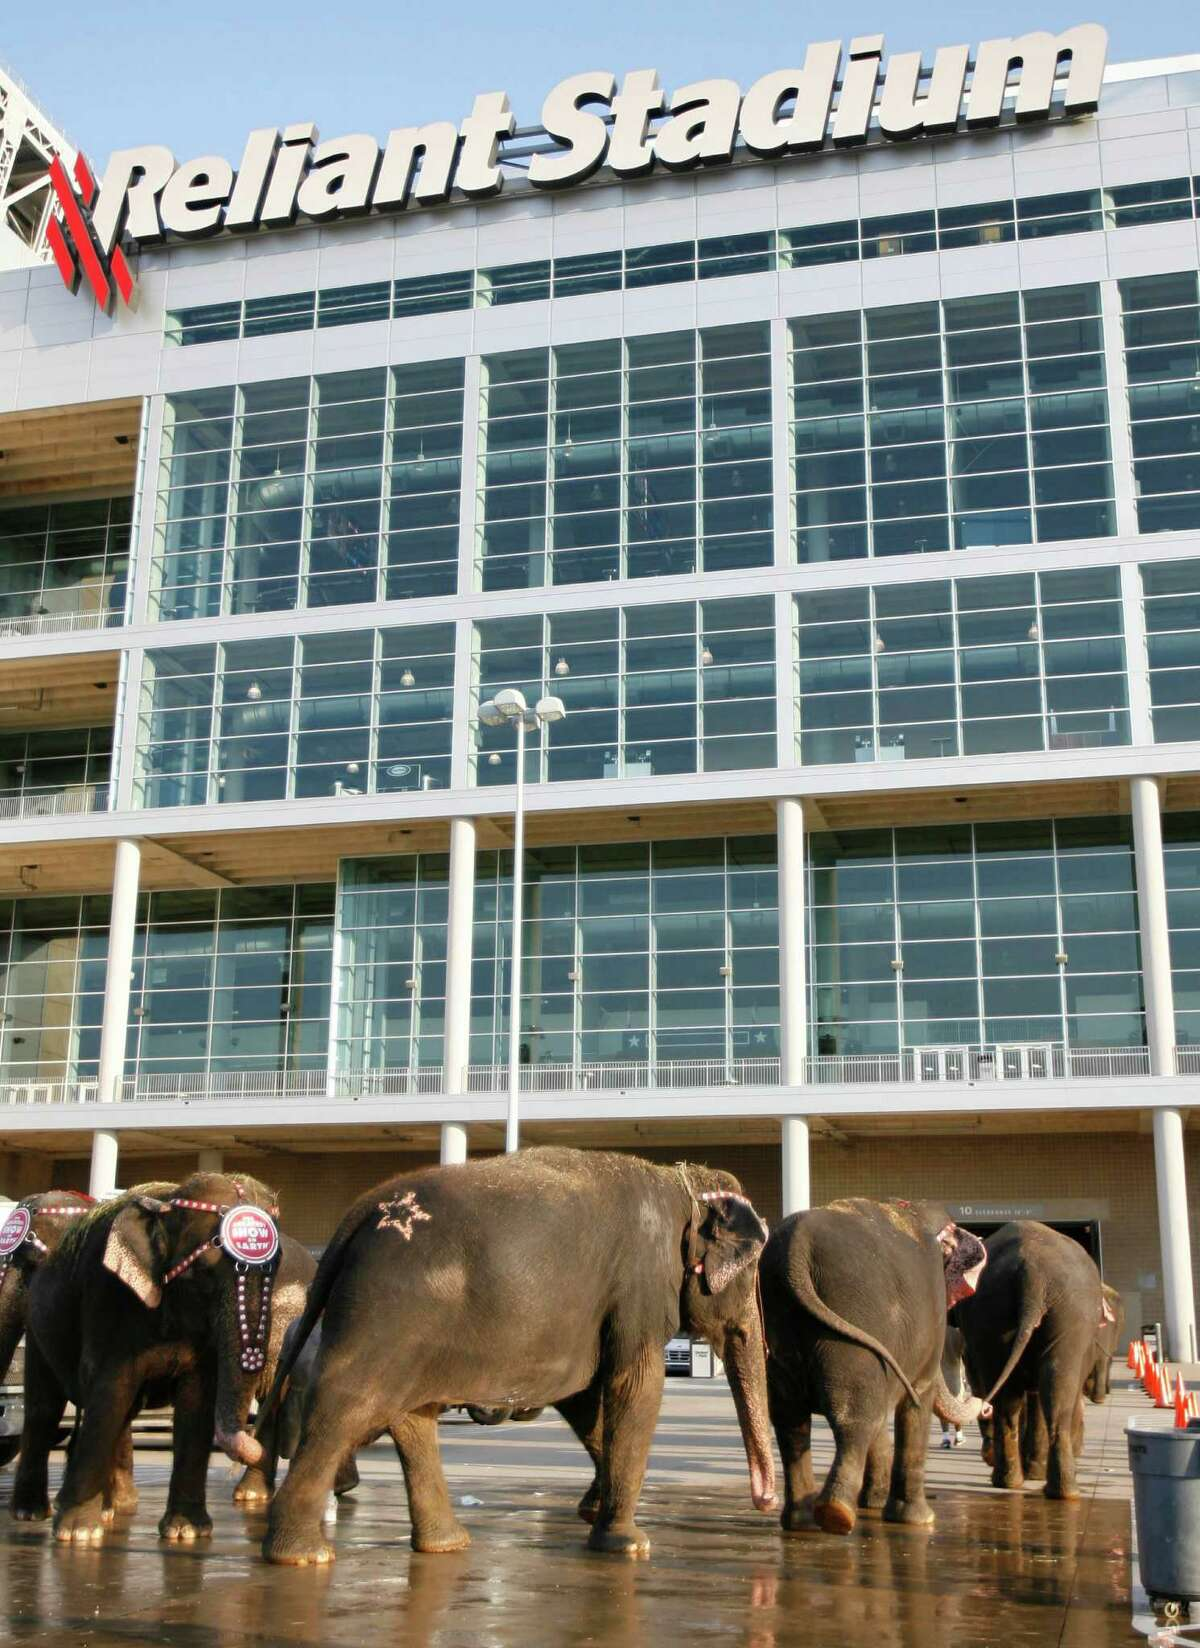 Ten female Asian elephants walk into Reliant Stadium in 2006 for the circus's Houston visit.